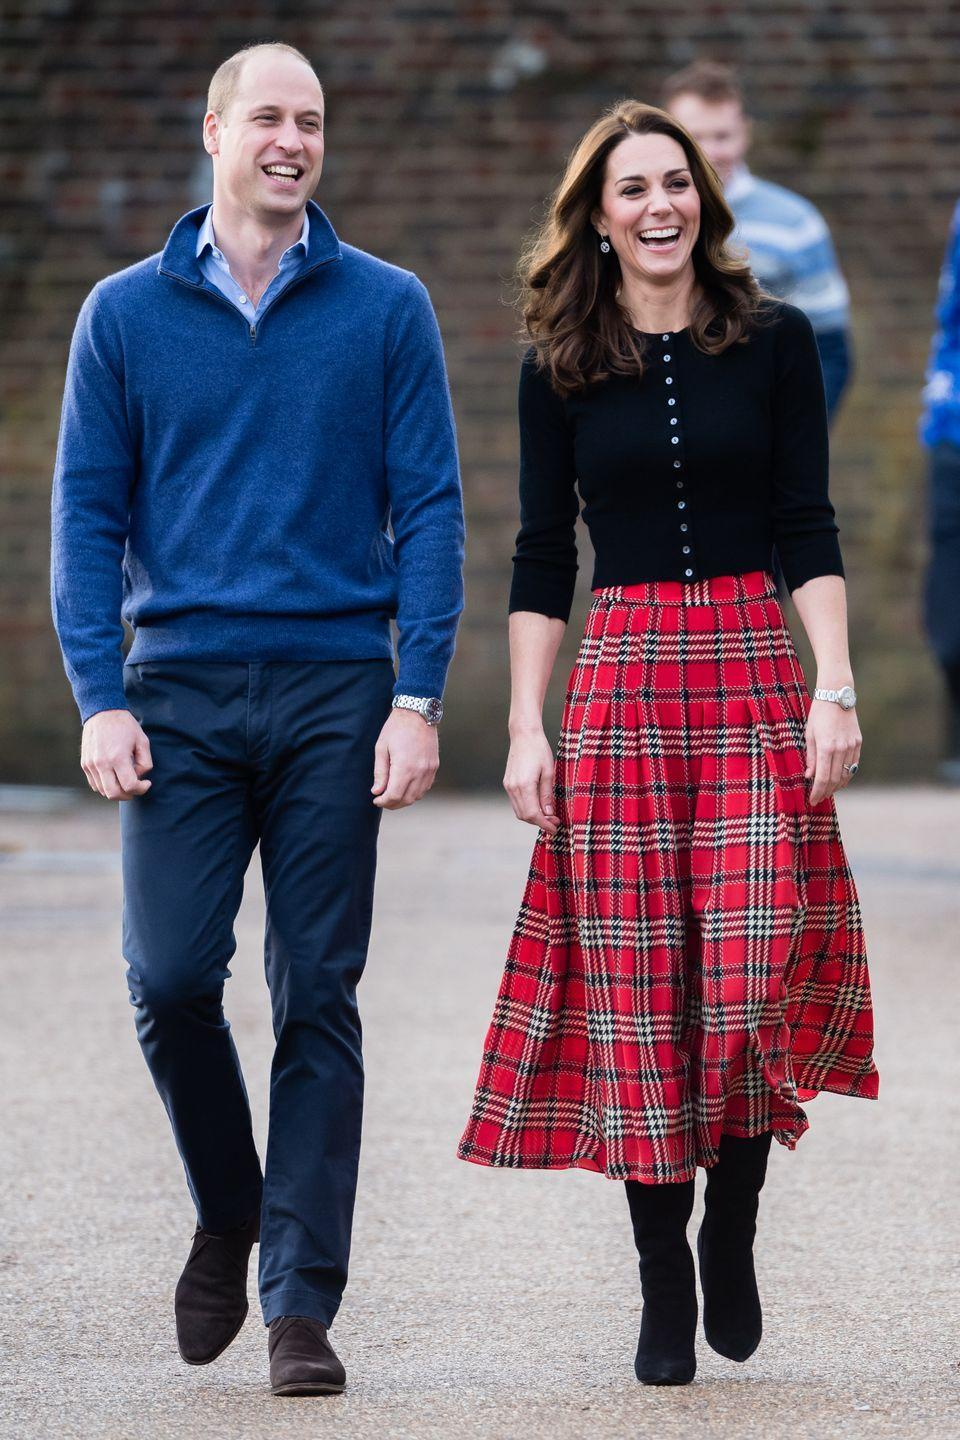 <p>Will and Kate are all smiles as they arrive at a Christmas party for military families in London. The Duchess looked festive in a plaid skirt by Emilia Wickstead with a black sweater by Brora.</p>